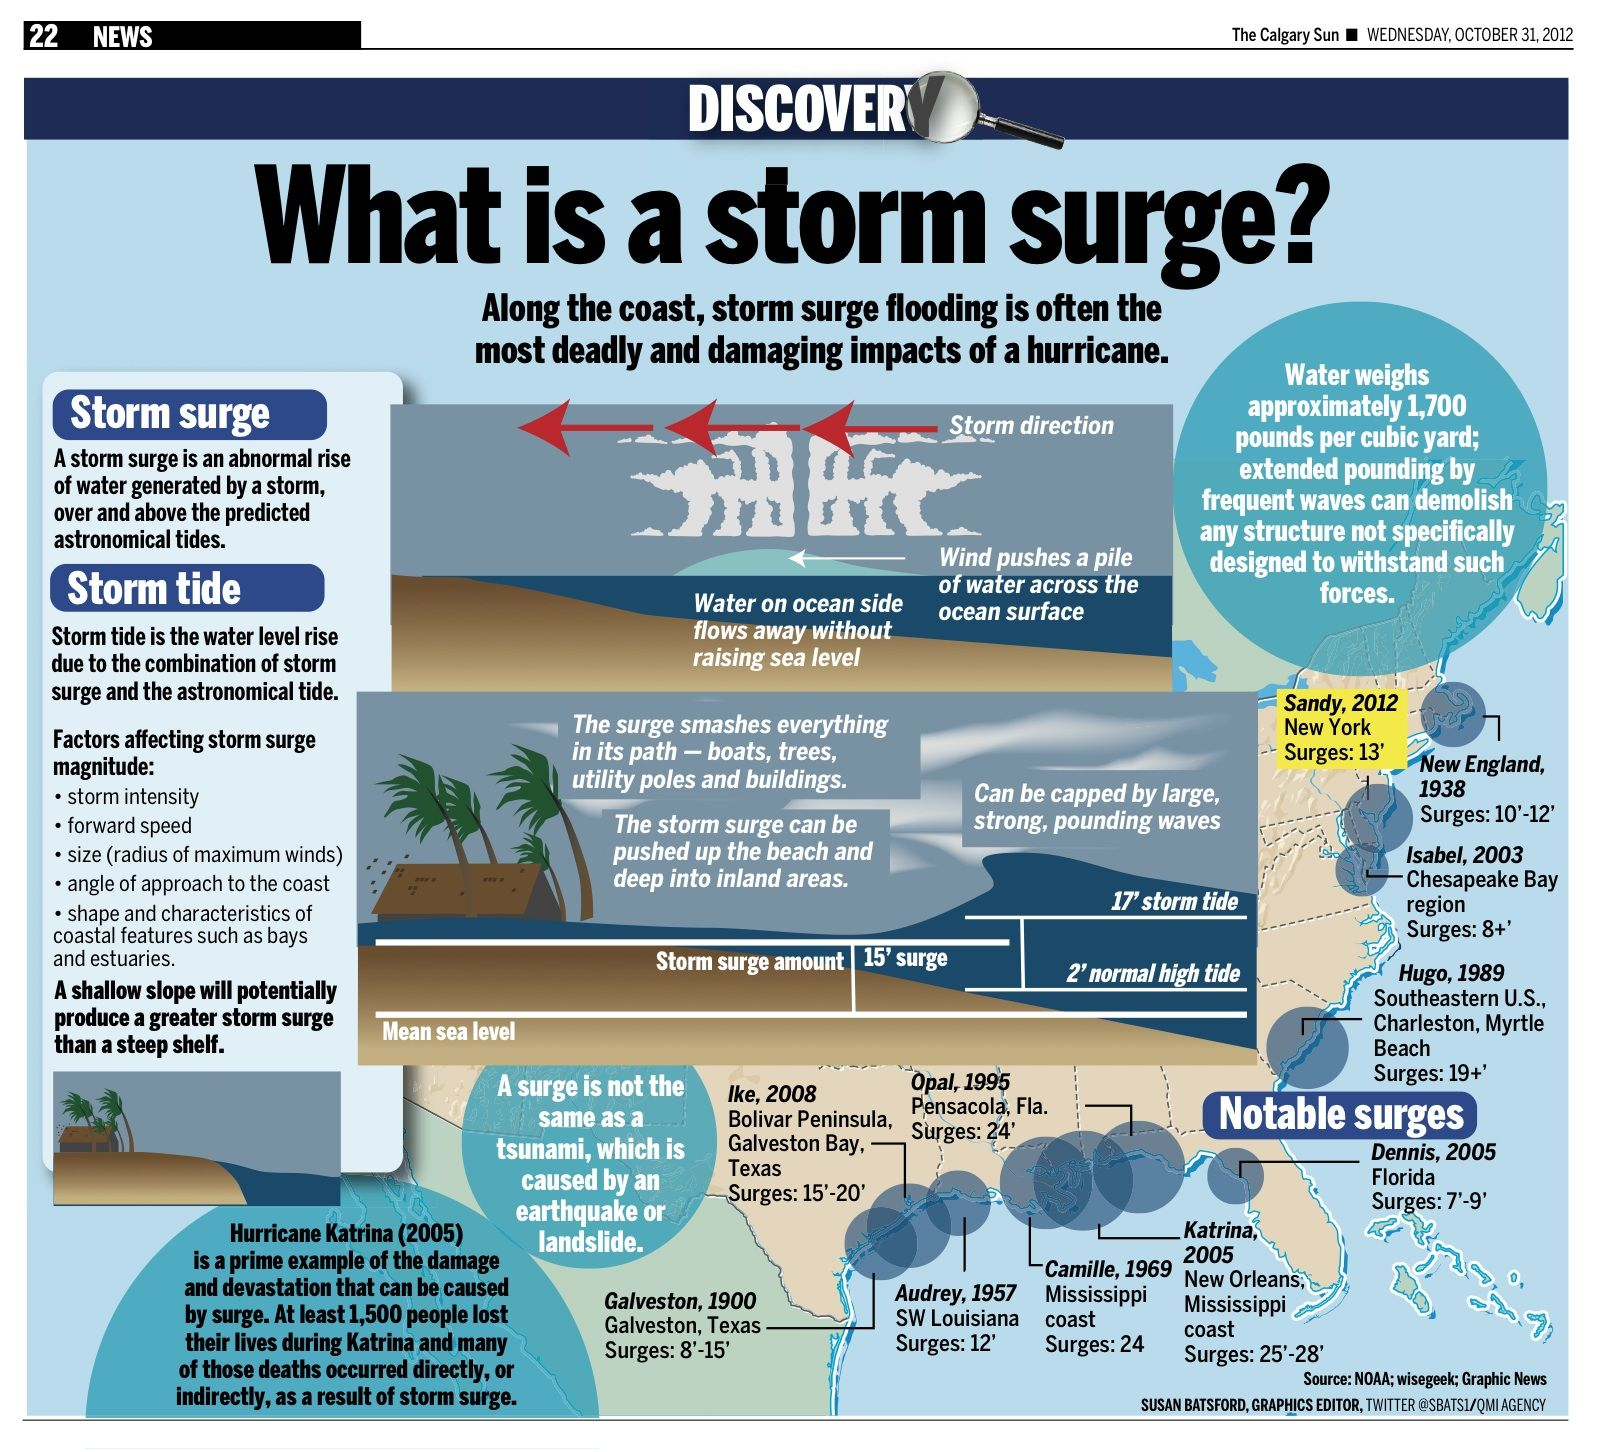 Along The Coast Storm Surge Flooding Is Often The Most